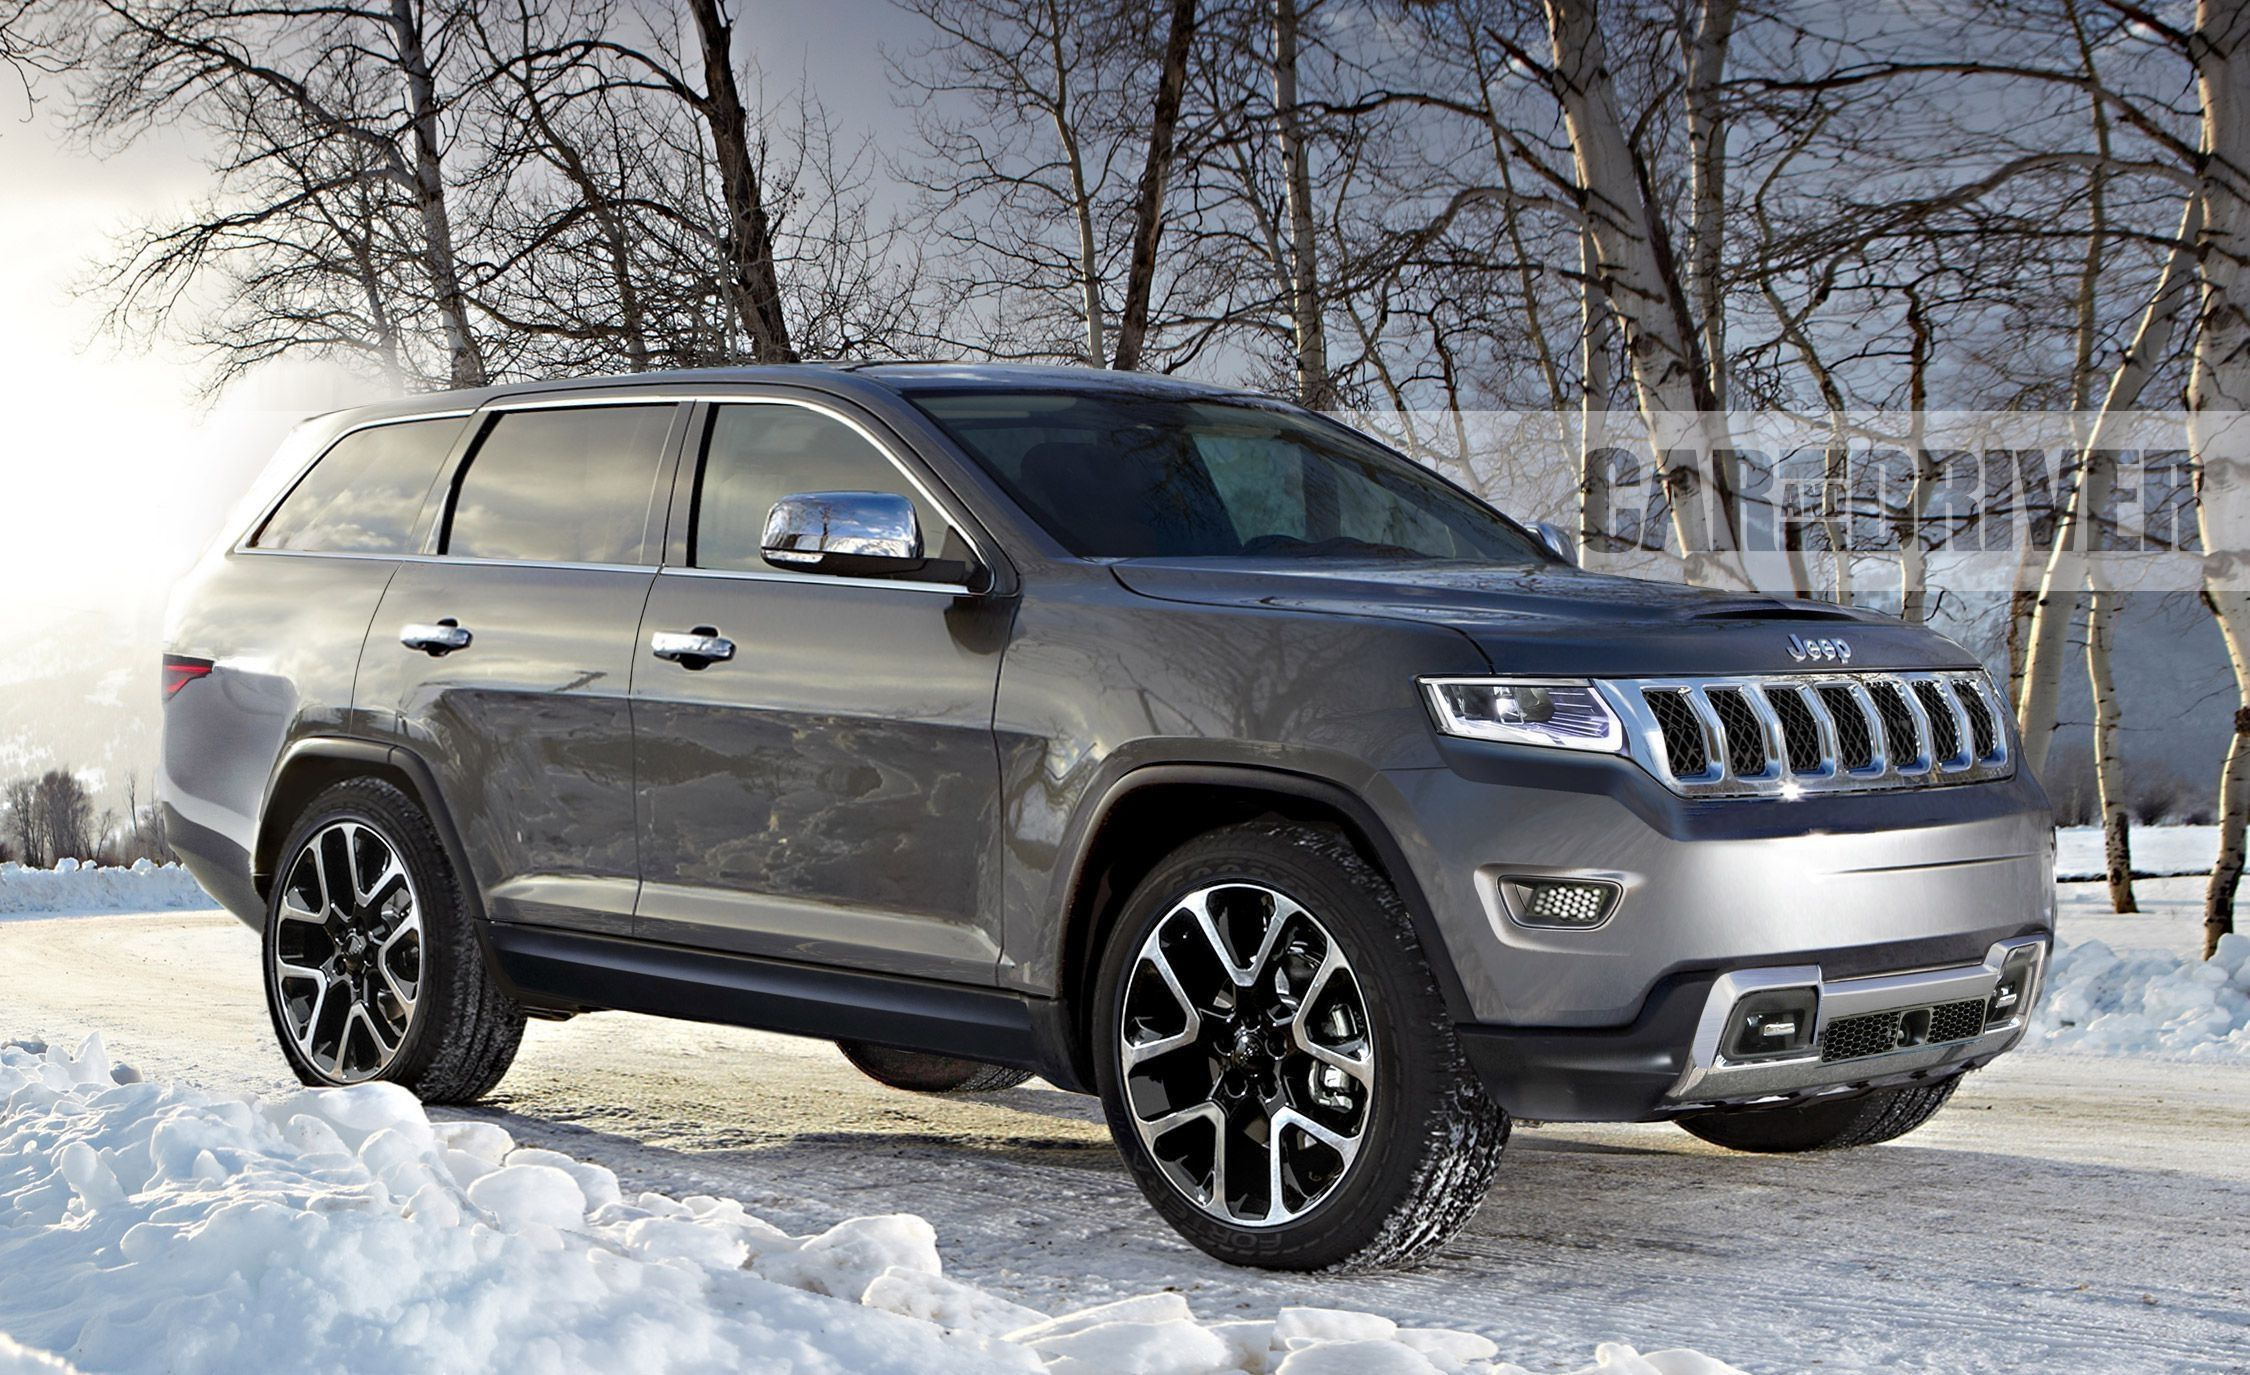 Jeep Wagoneer 2020 Price Redesign In 2020 Jeep Grand Cherokee Jeep Wagoneer Jeep Suv